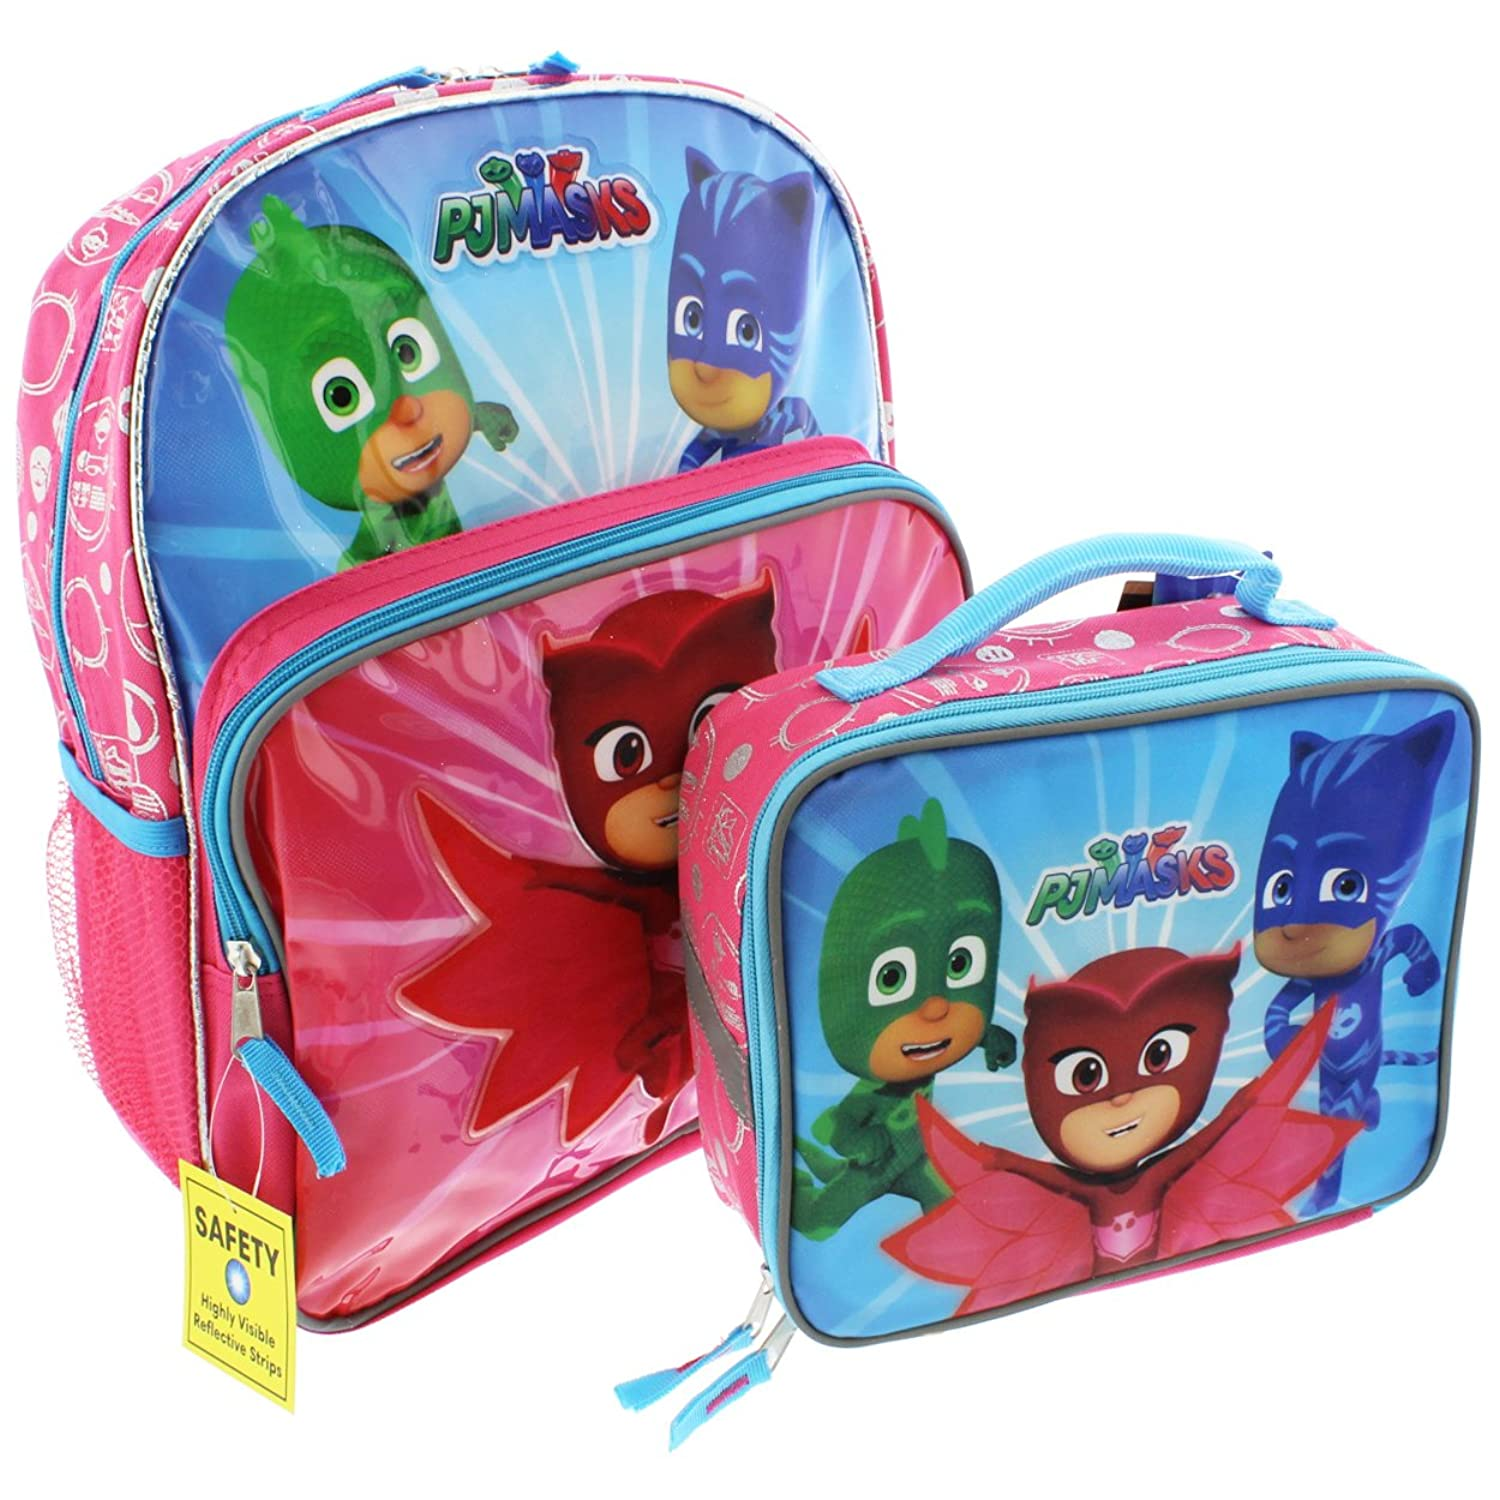 PJ Masks 14 inch Backpack and Lunch Box Set